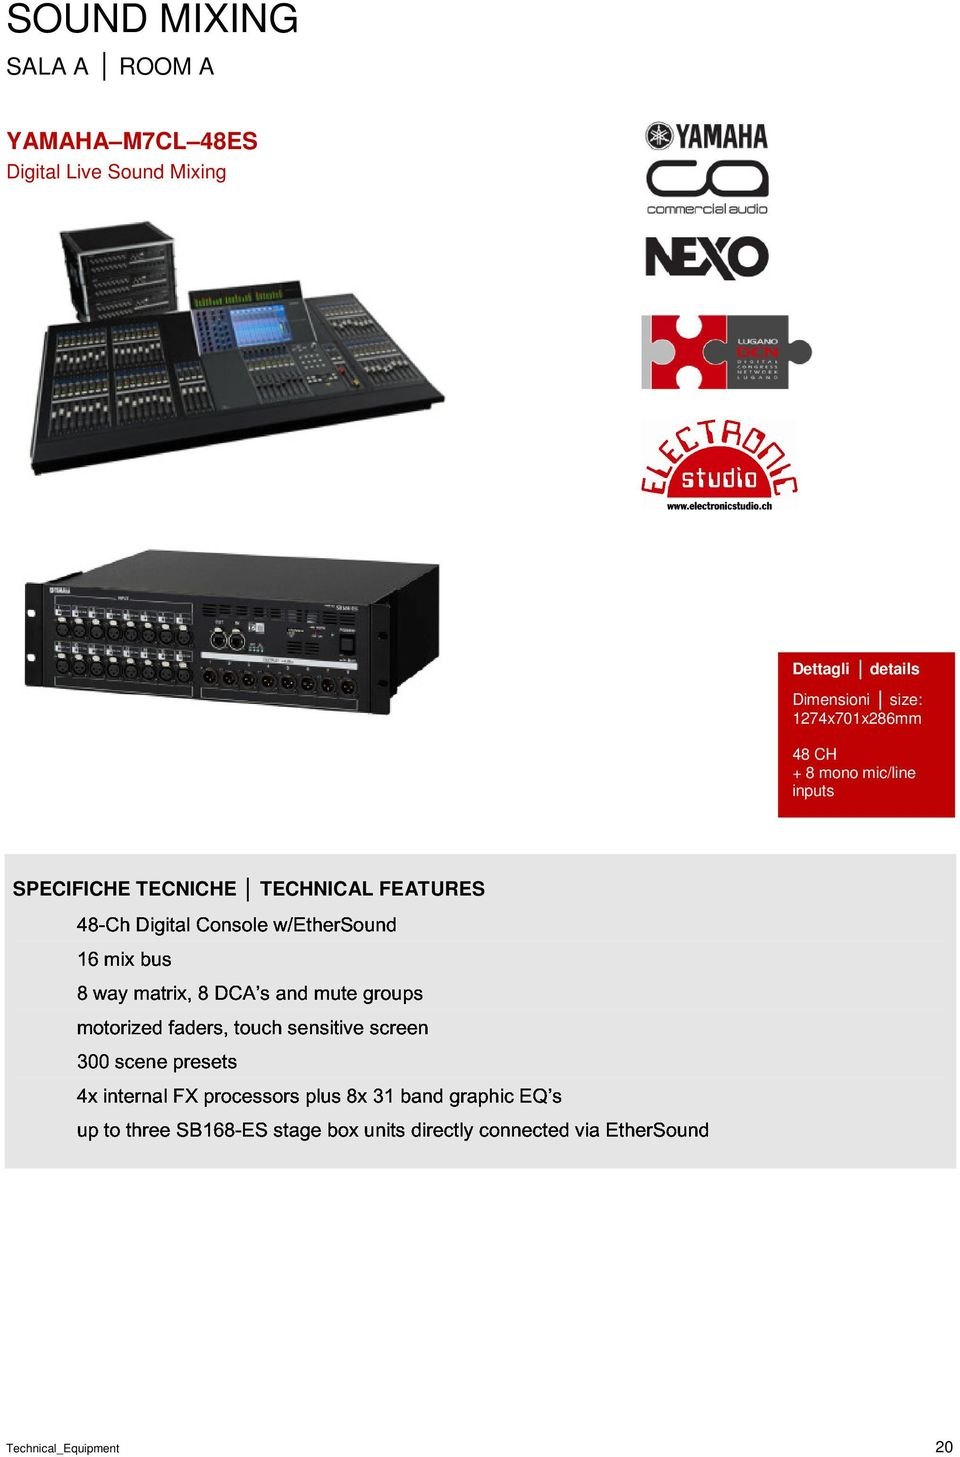 TECNICHE presets touch sensitive screen TECHNICAL FEATURES 4x up internal to three FX SB168-ES processors